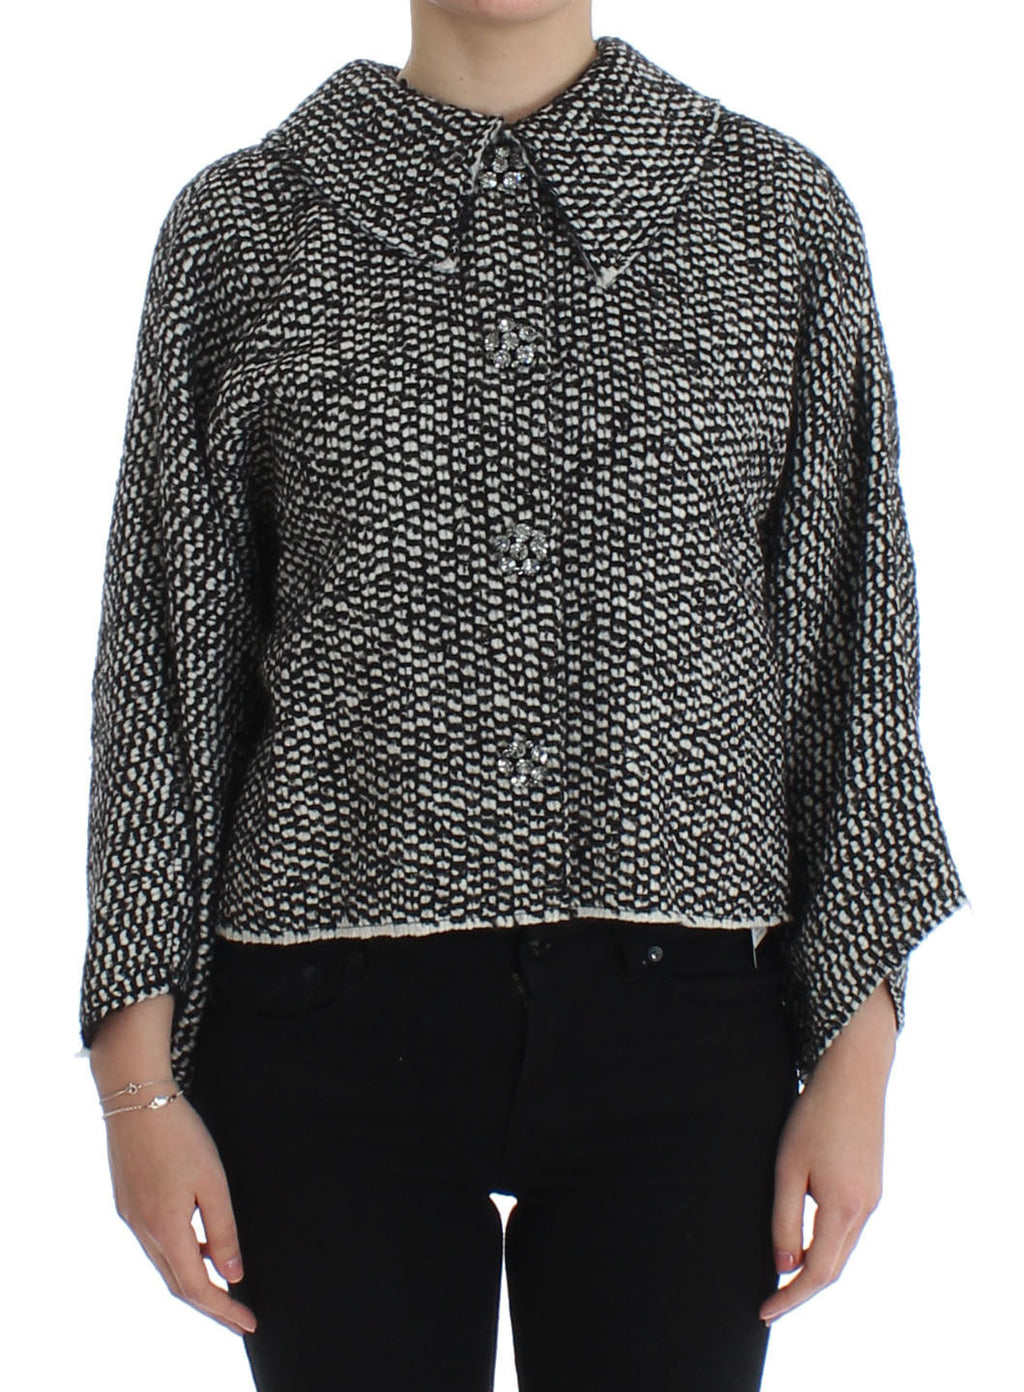 Black White Tweed Crystal Jacket Coat